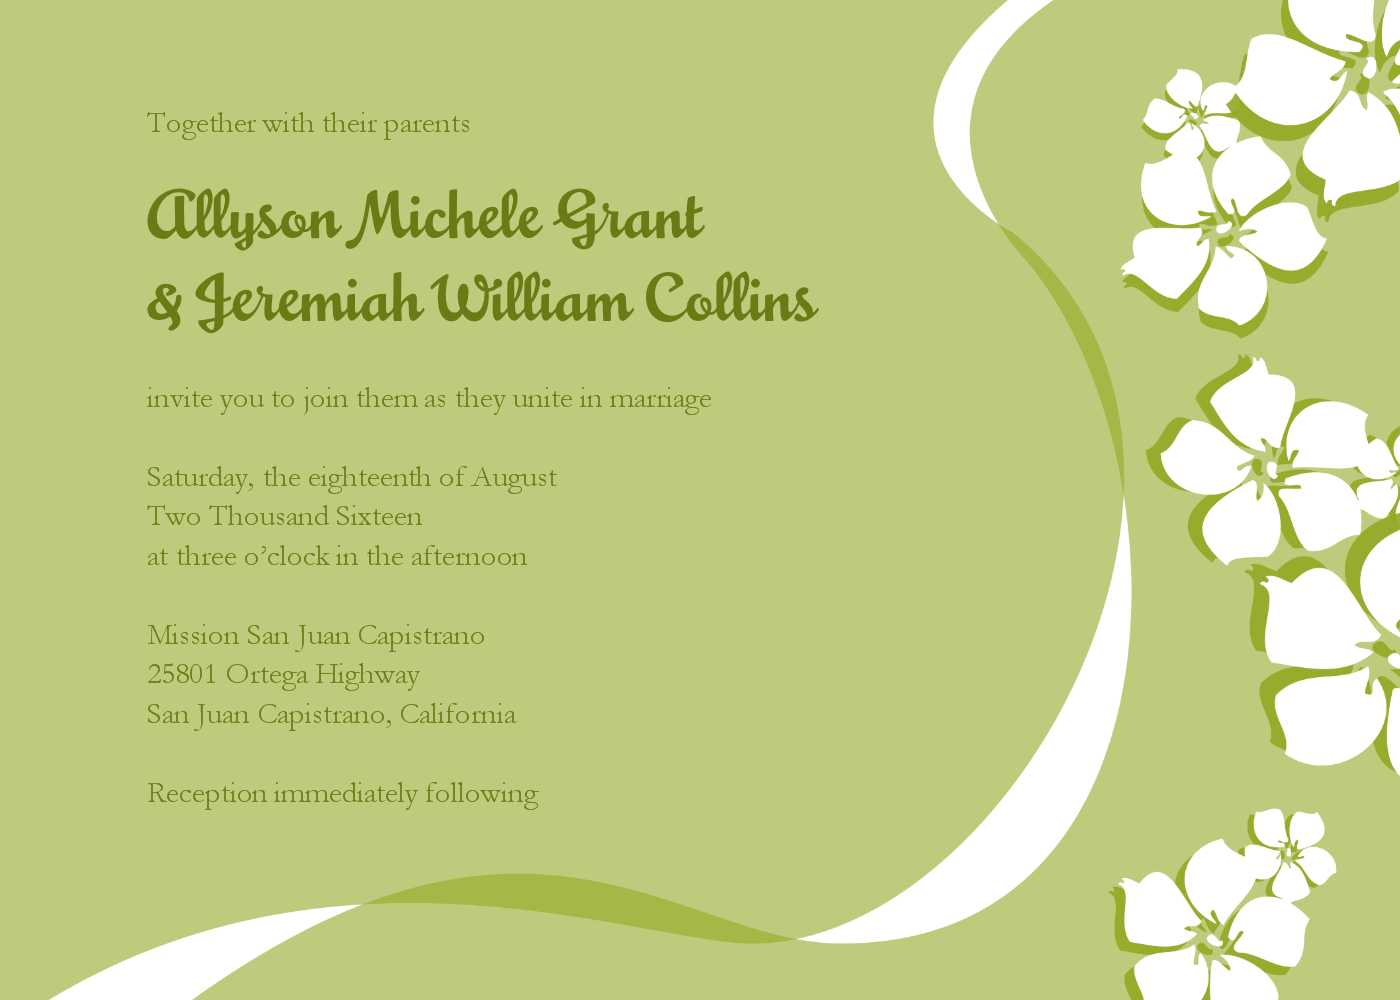 E Wedding Card Templates Free - Cards Design Templates Regarding Free E Wedding Invitation Card Templates